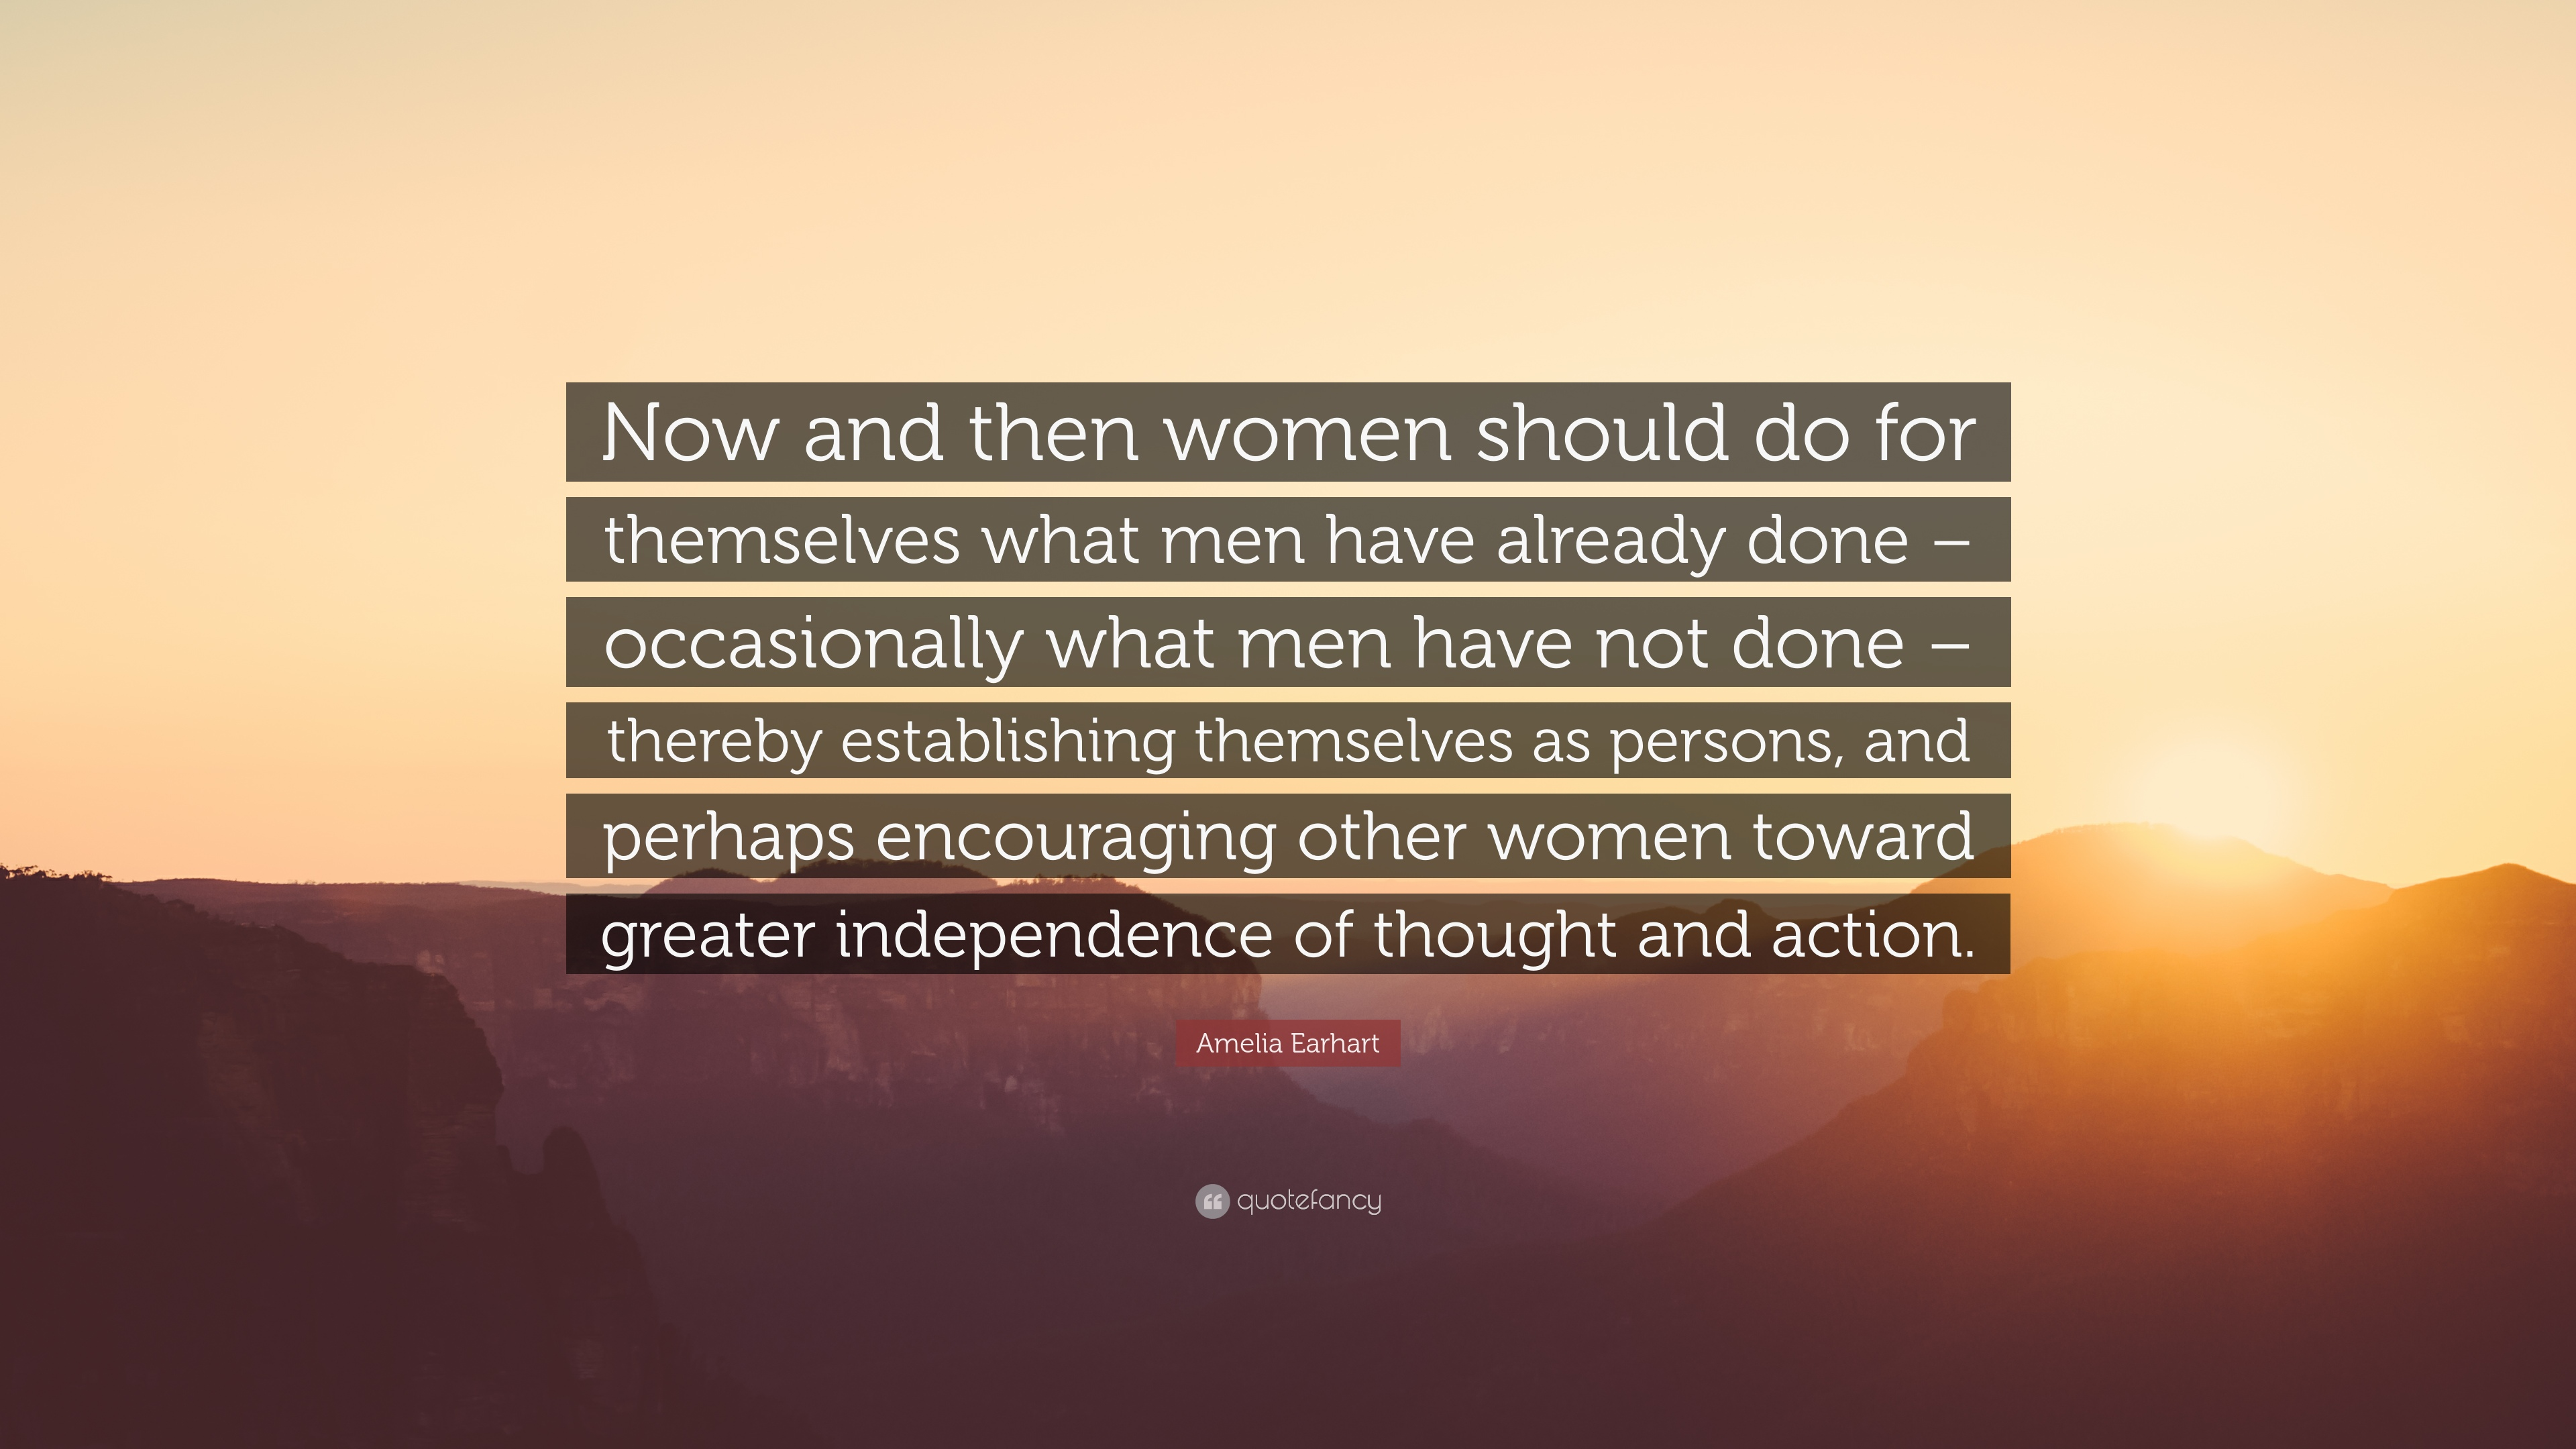 What Men Should Do For Women